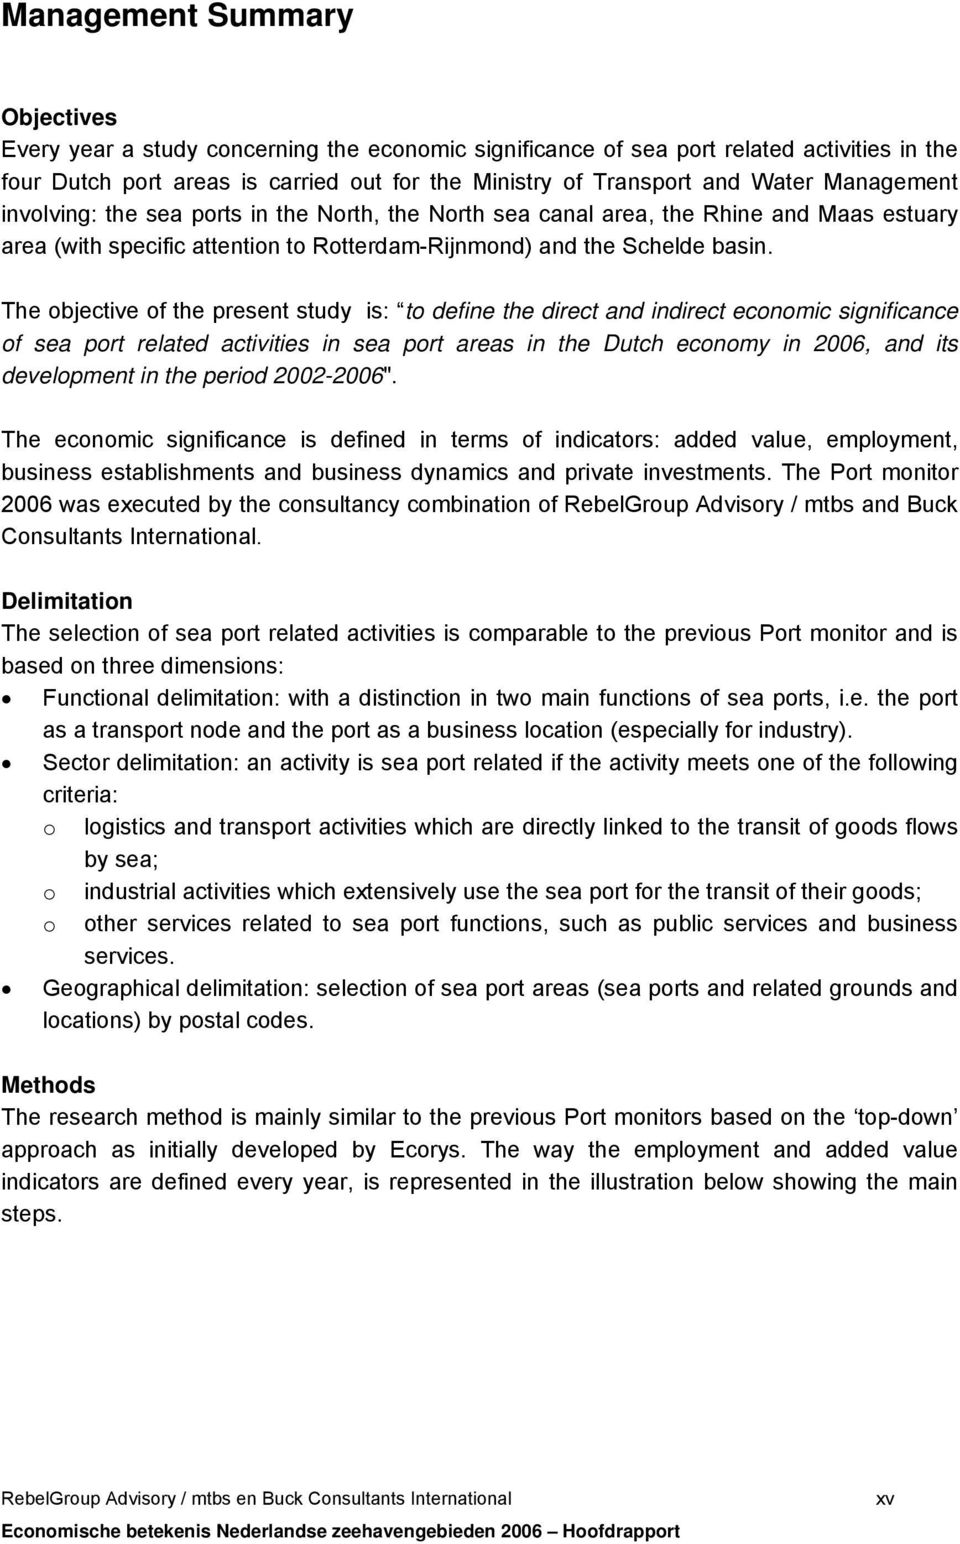 The objective of the present study is: to define the direct and indirect economic significance of sea port related activities in sea port areas in the Dutch economy in 2006, and its development in